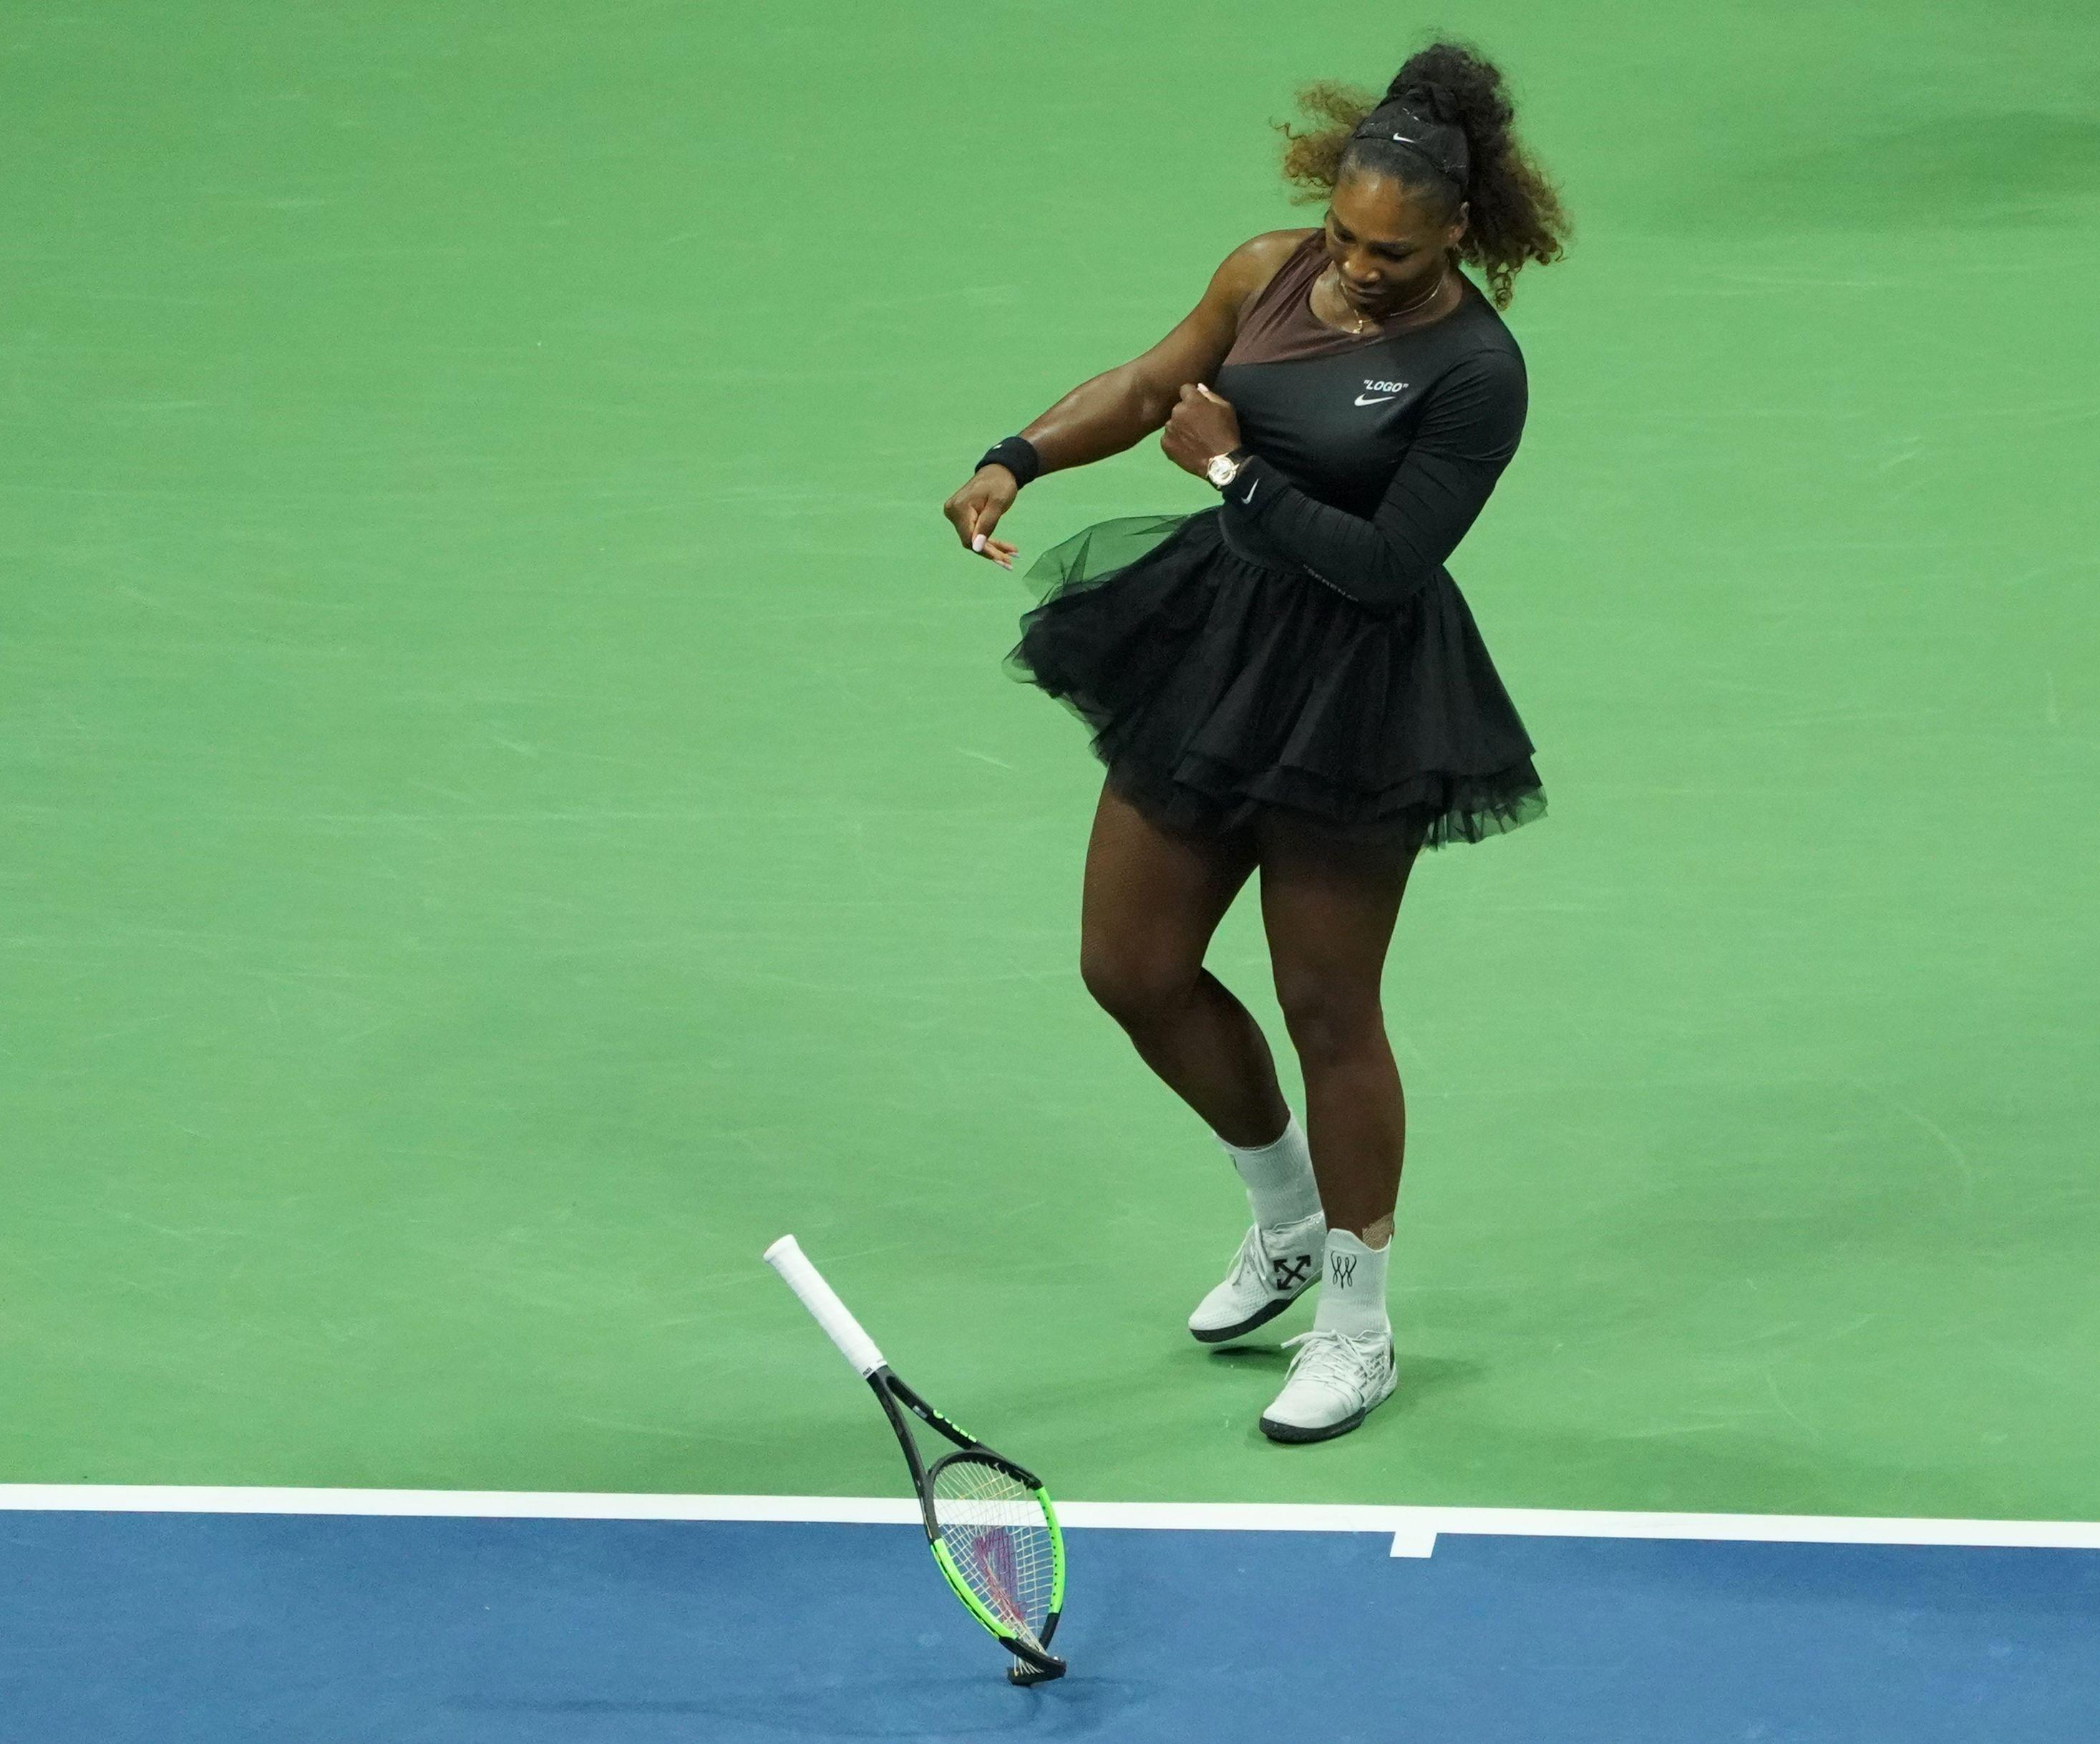 The 36-year-old breaks her racket in fury during the US Open final